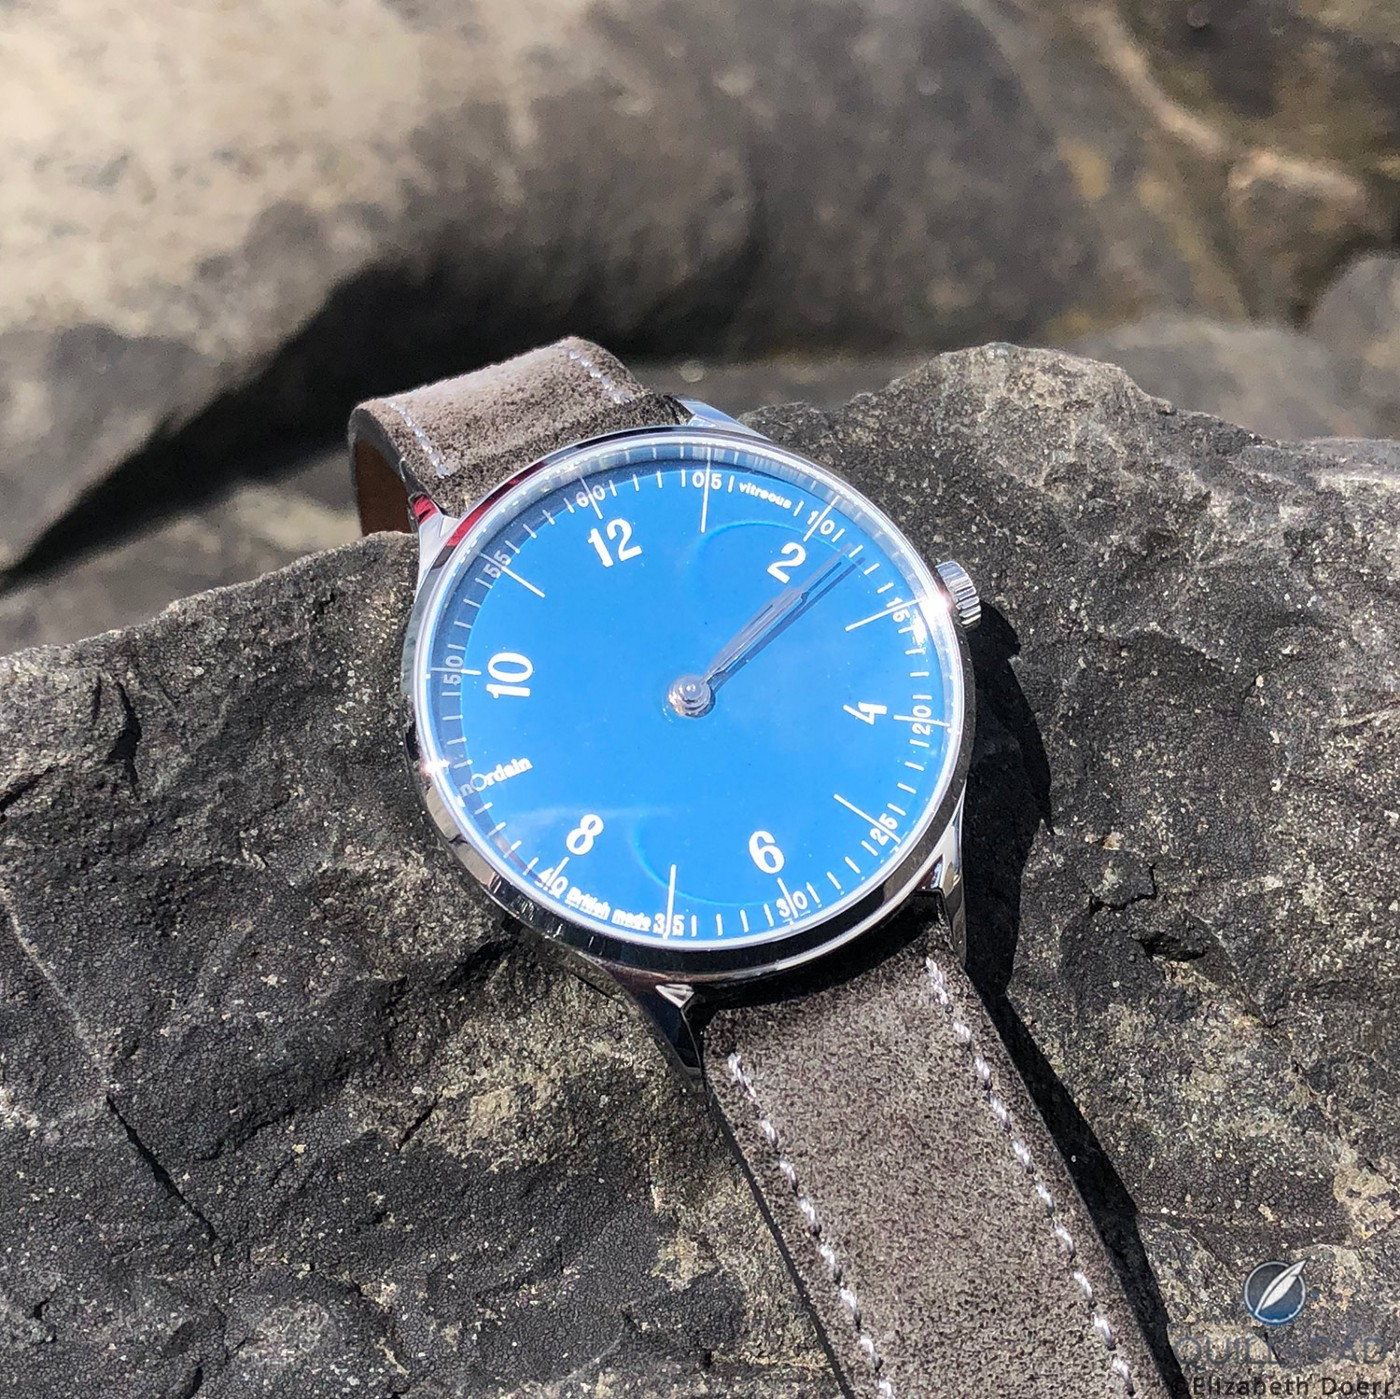 anOrdain Model 1 with blue oven-fired enamel dial